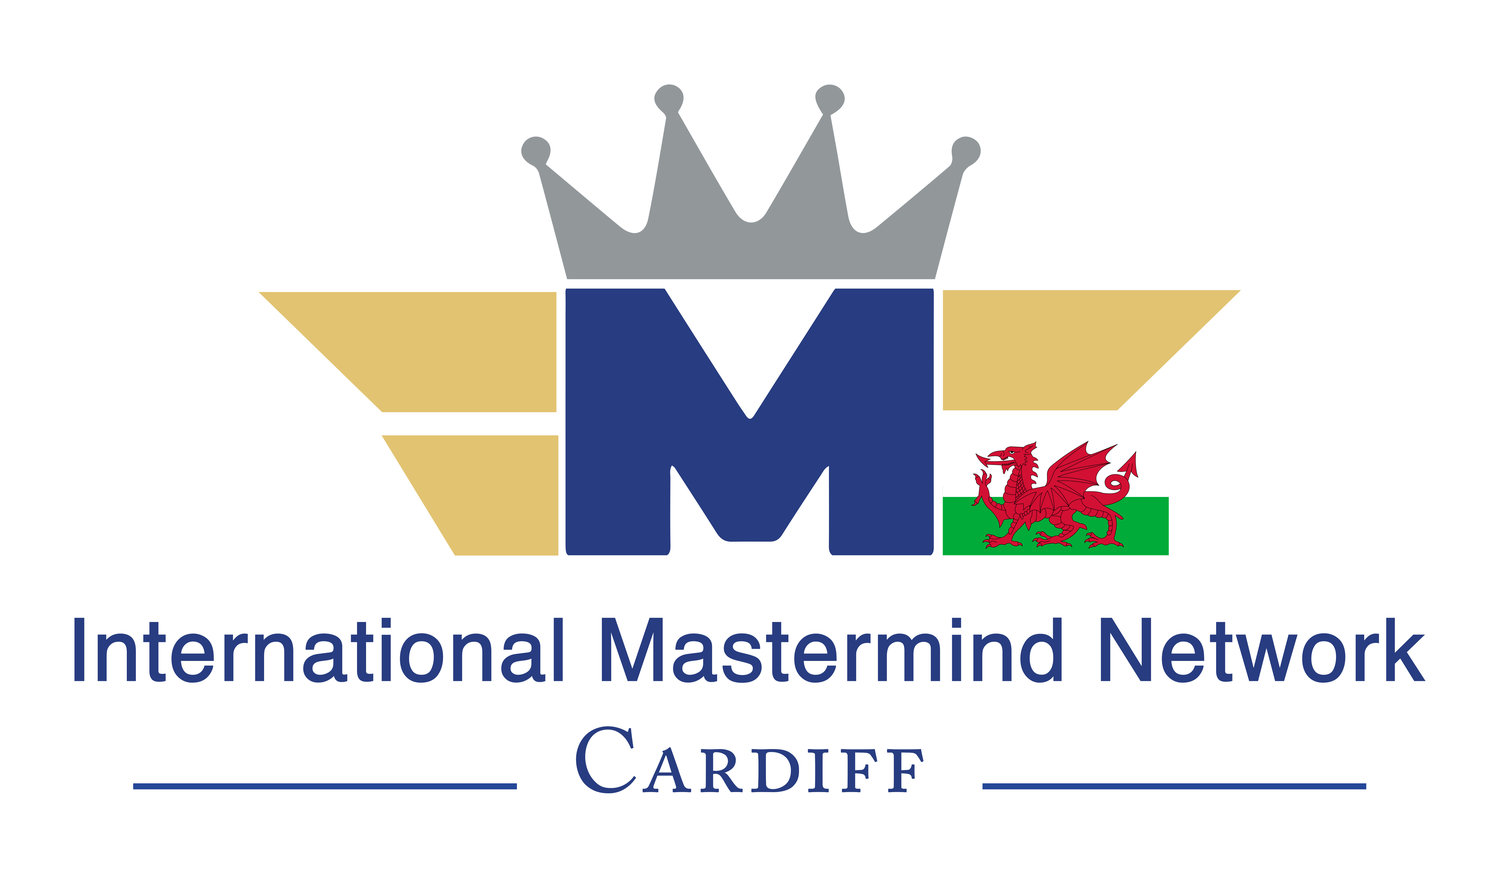 Cardiff Branch of IMN